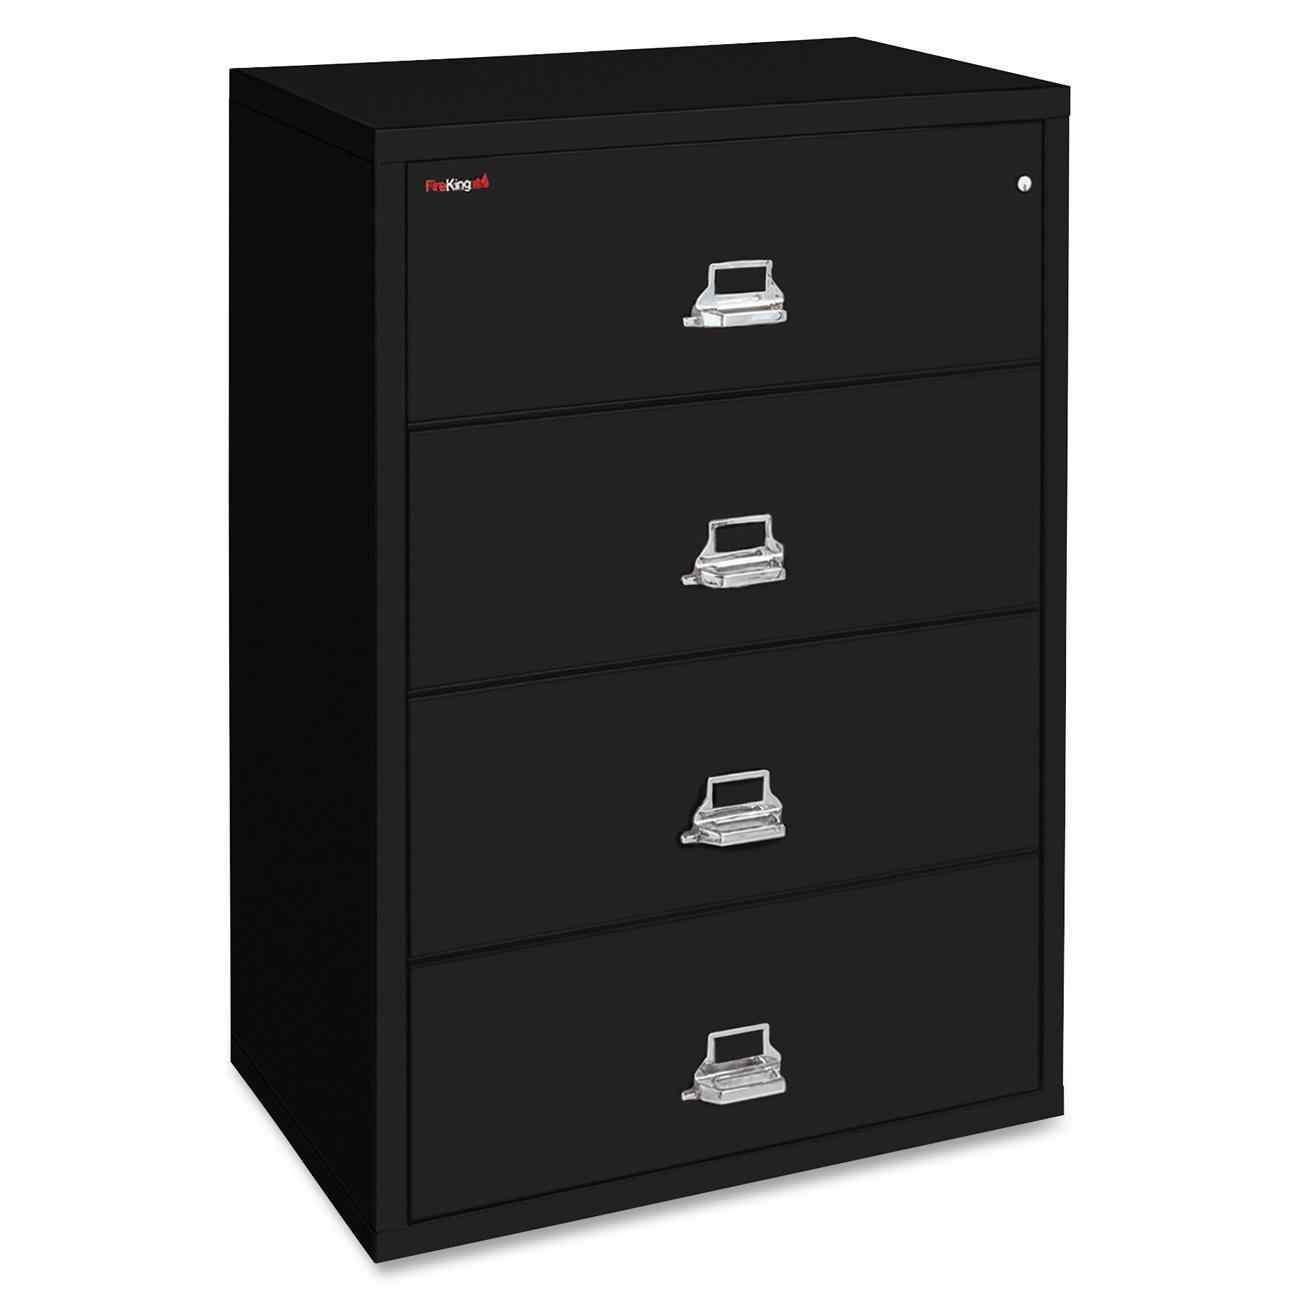 Fireking Fire Resistant Lateral Cabinets Buy Rite